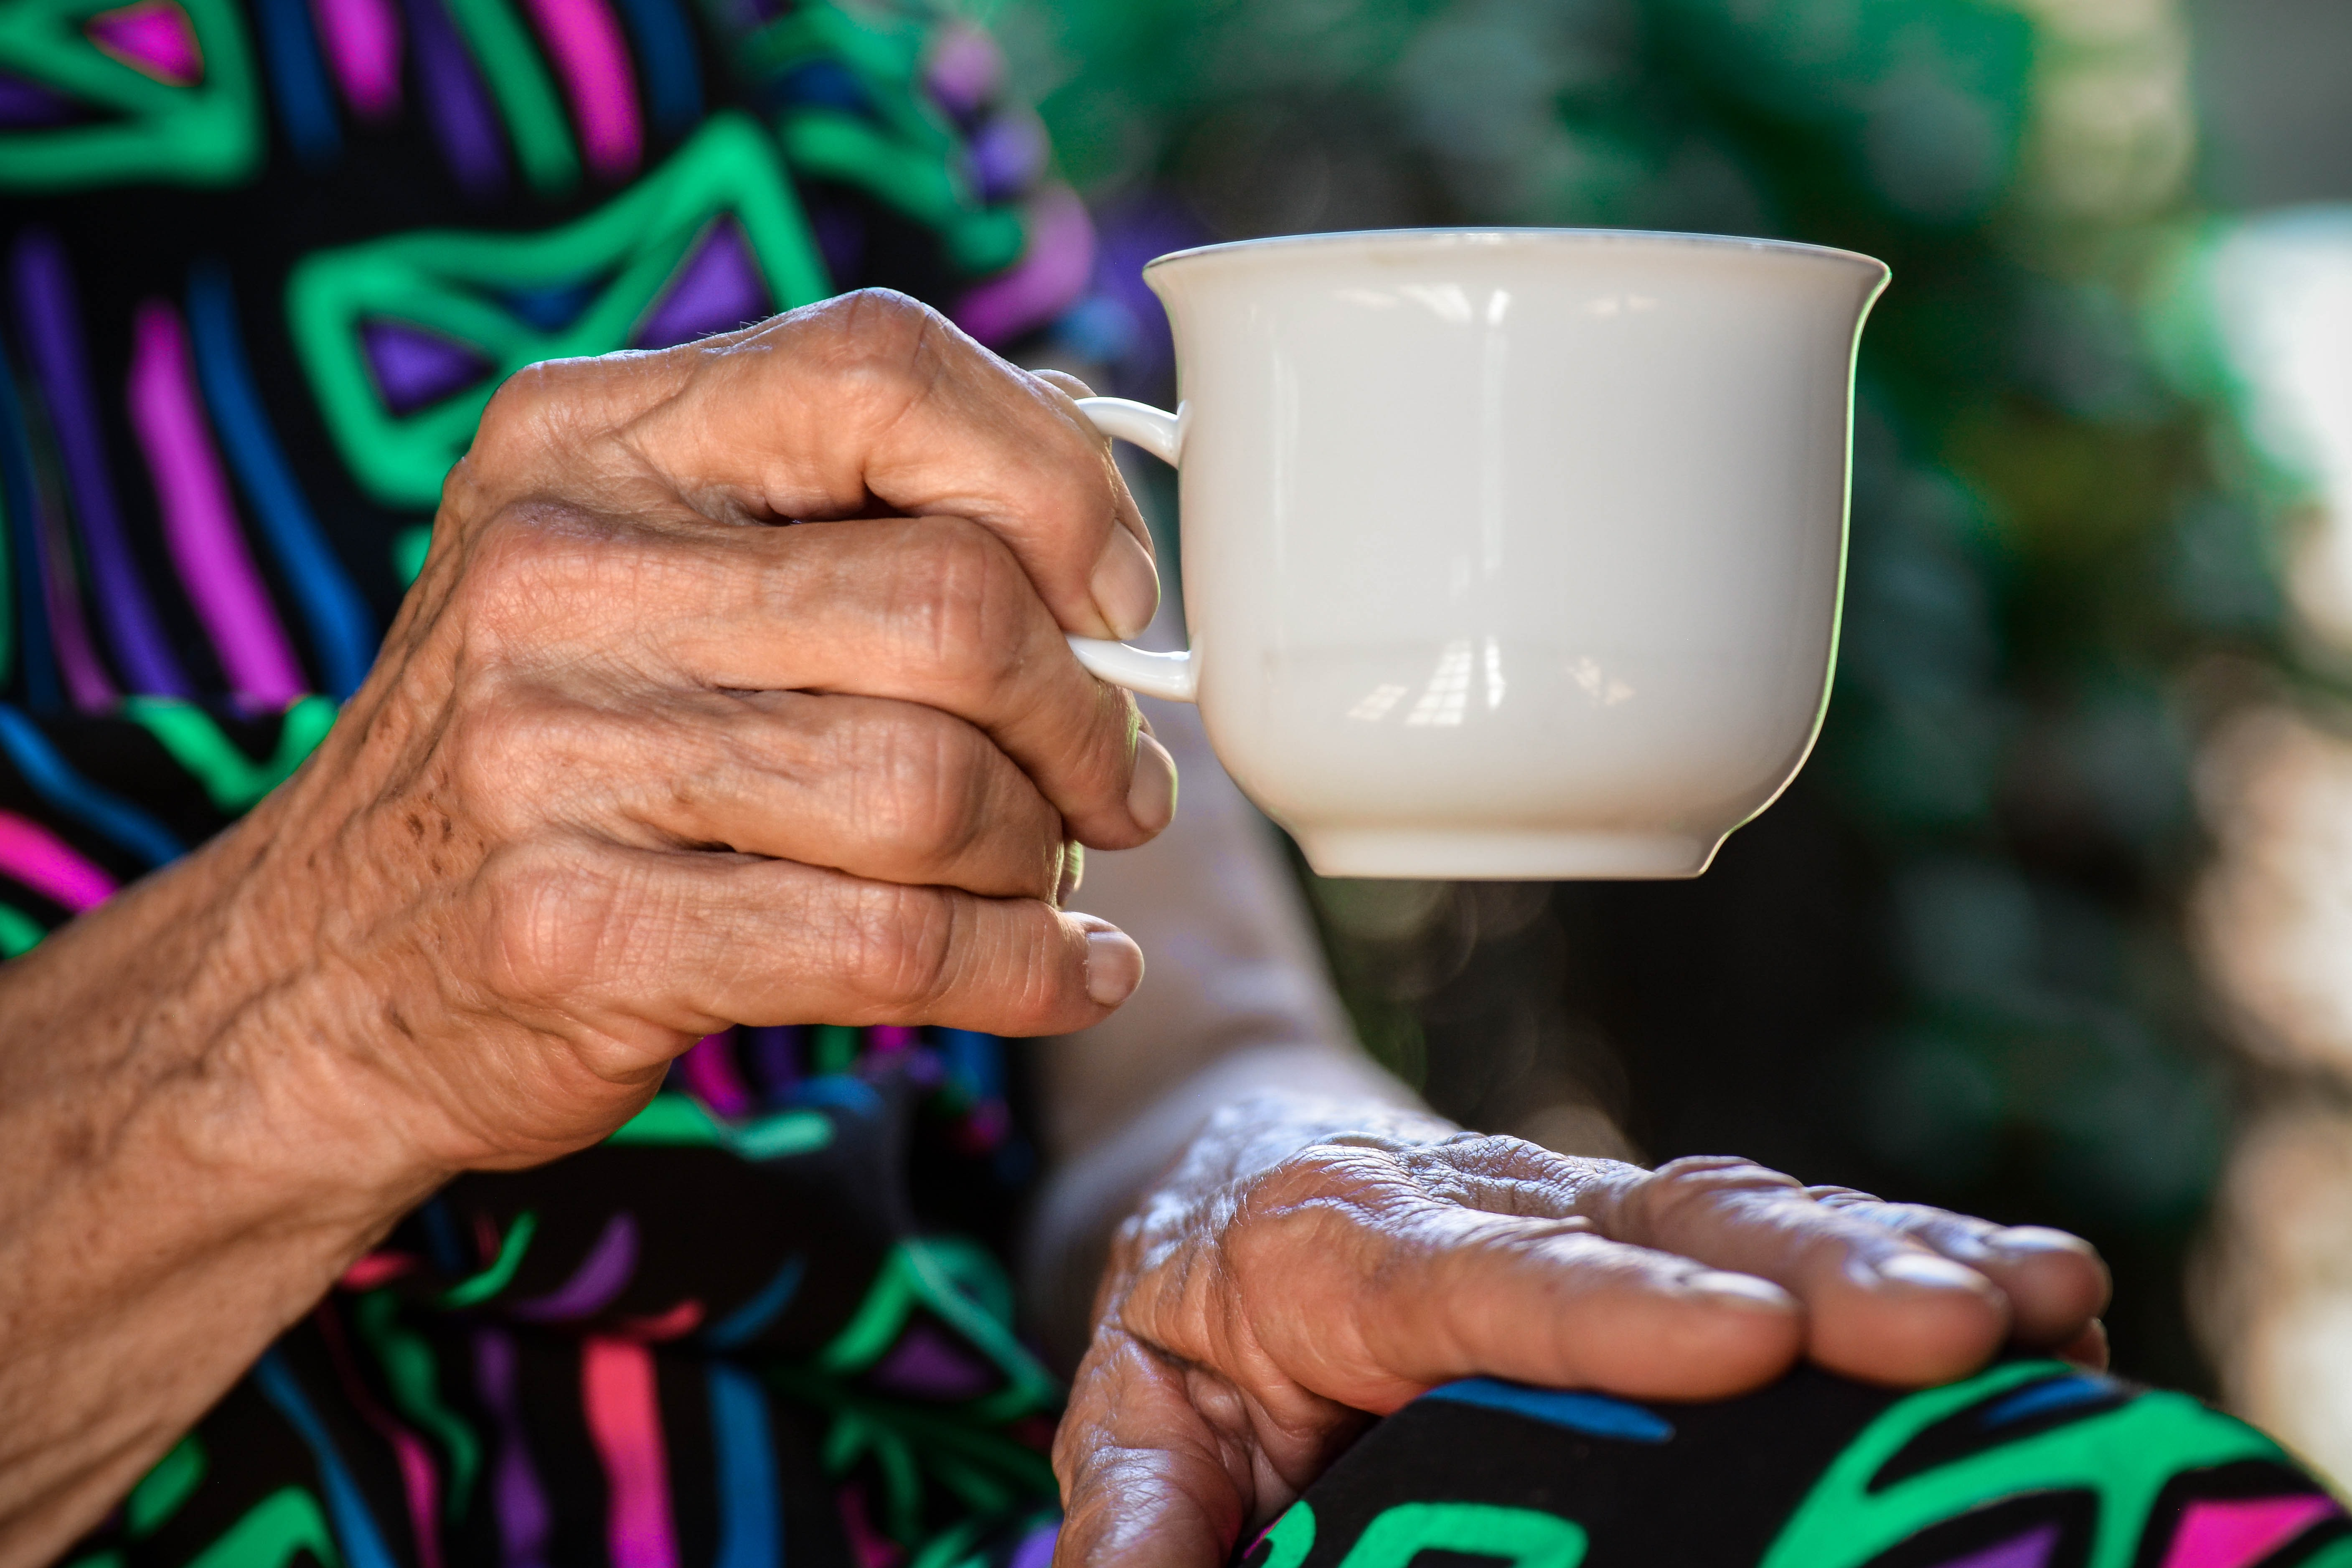 person holding white ceramic teacup